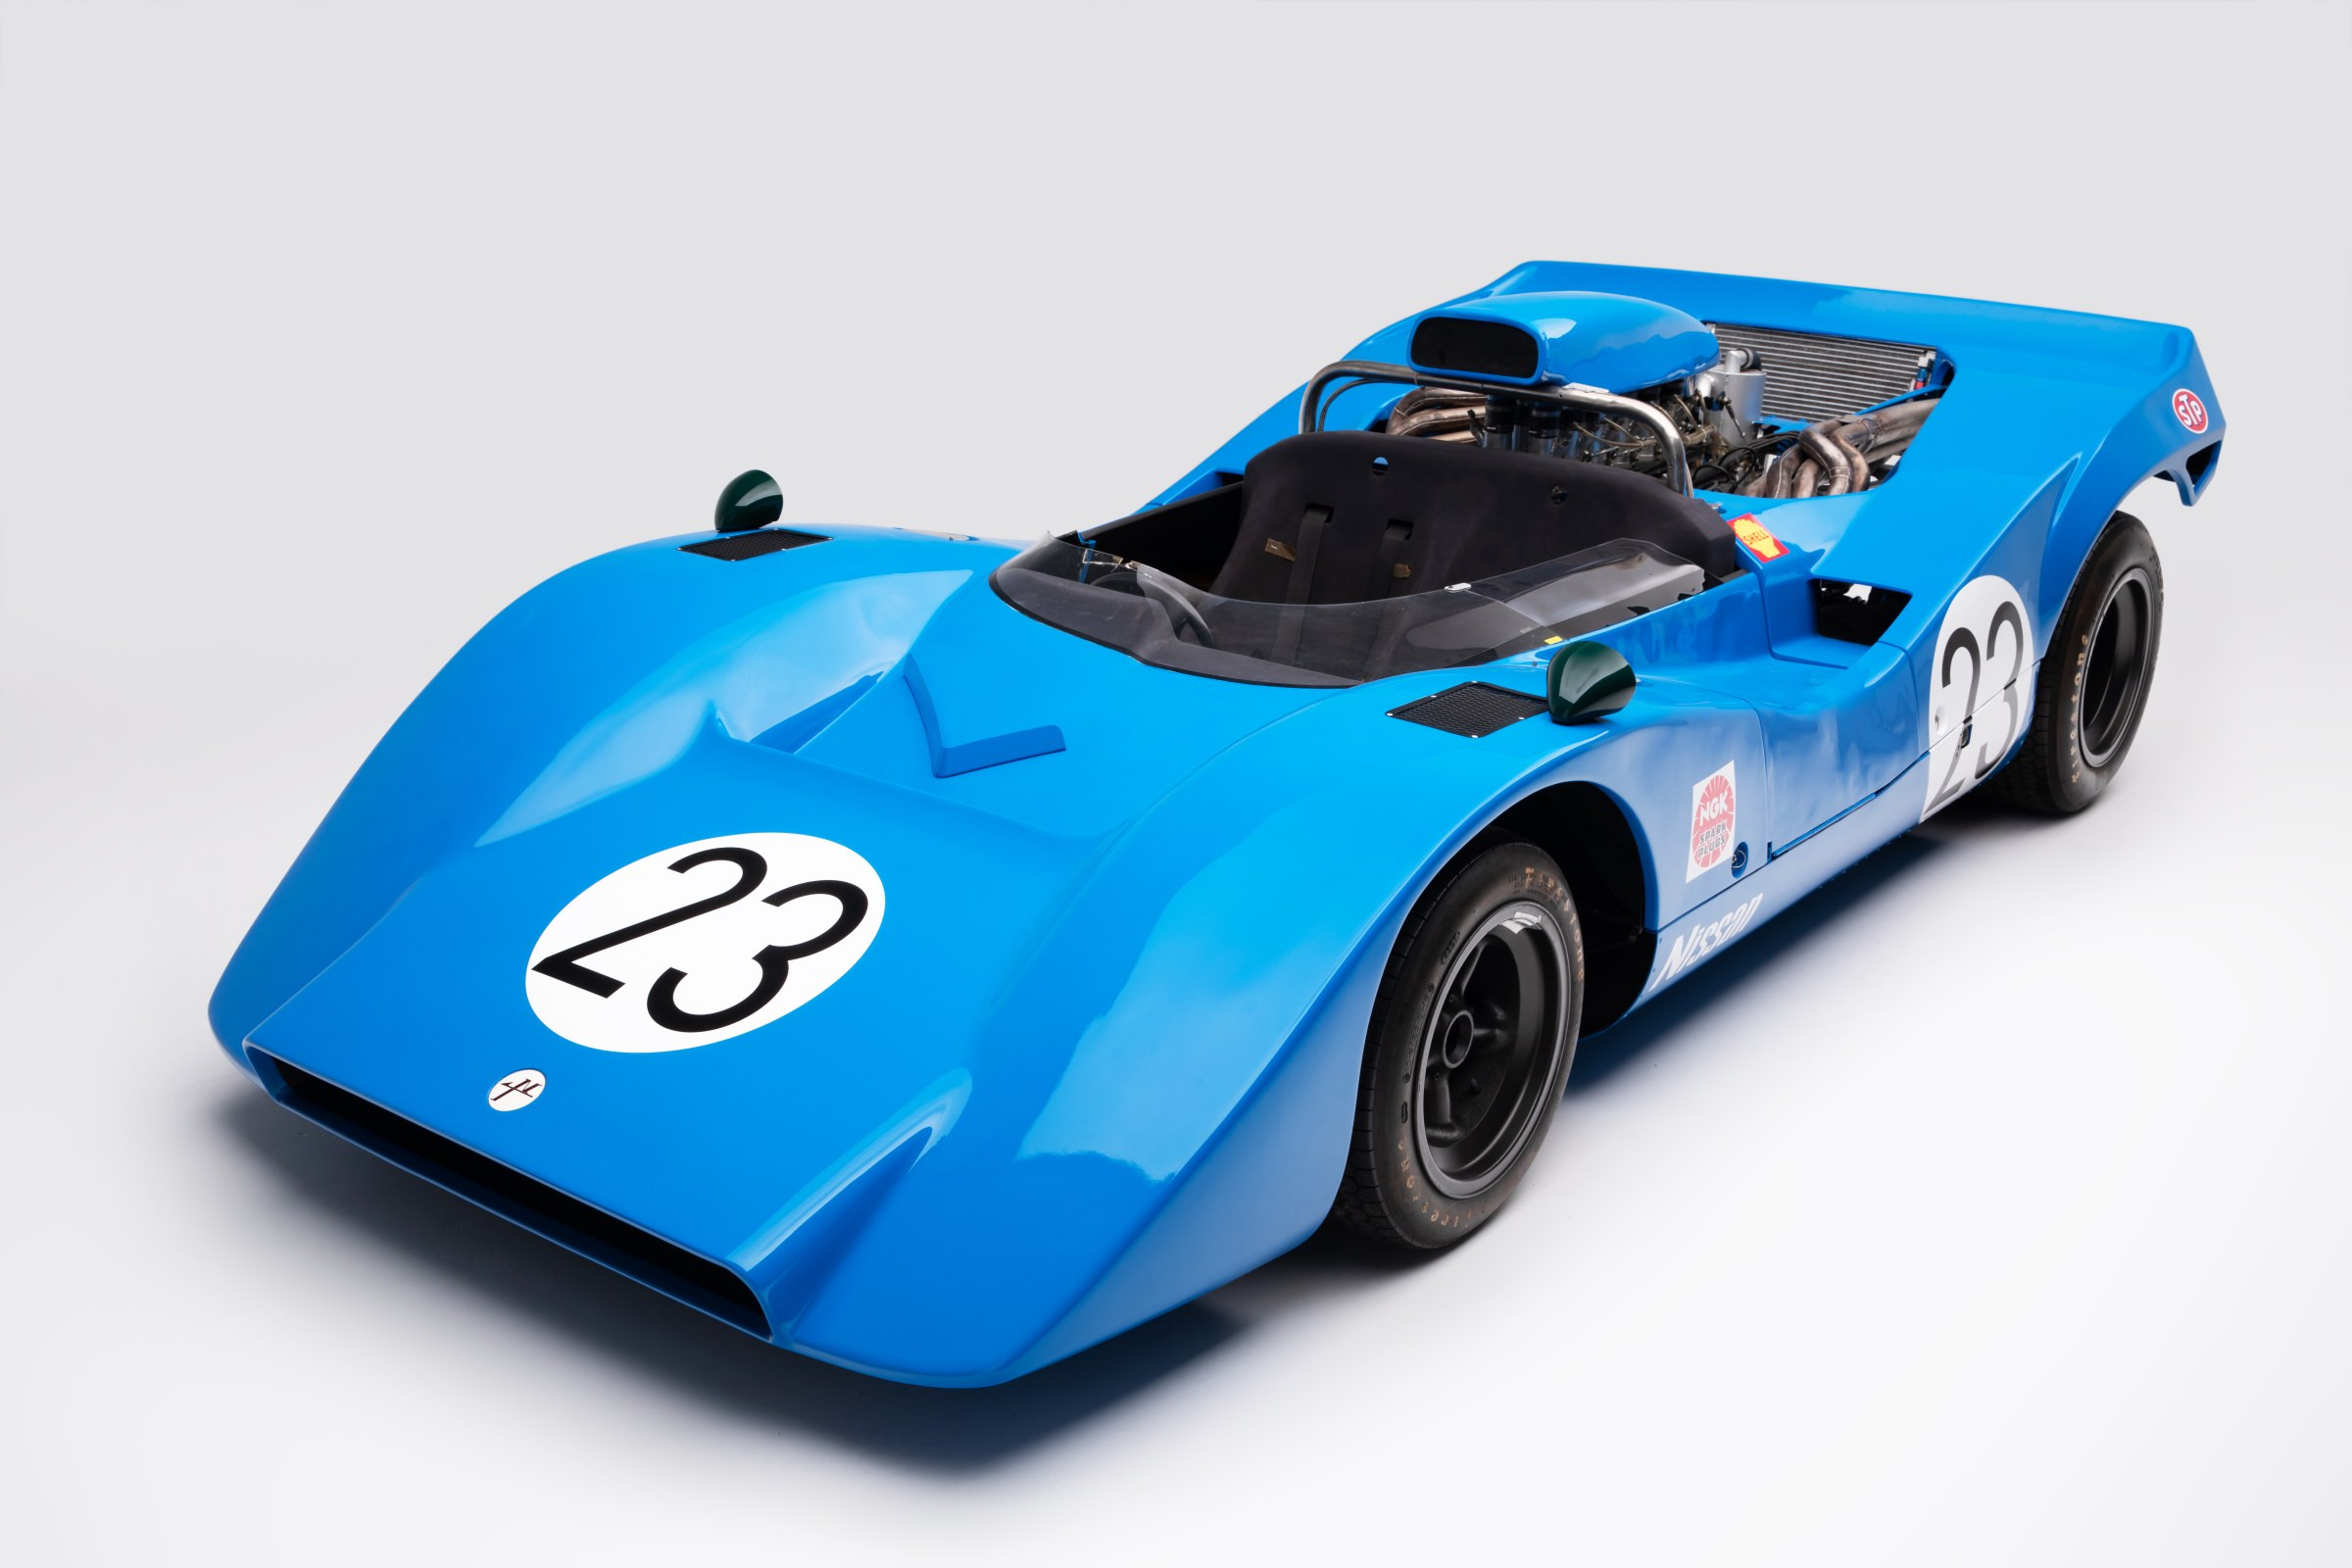 1969 Nissan R382 A Japanese 6 Litre V12 With 600 Hp